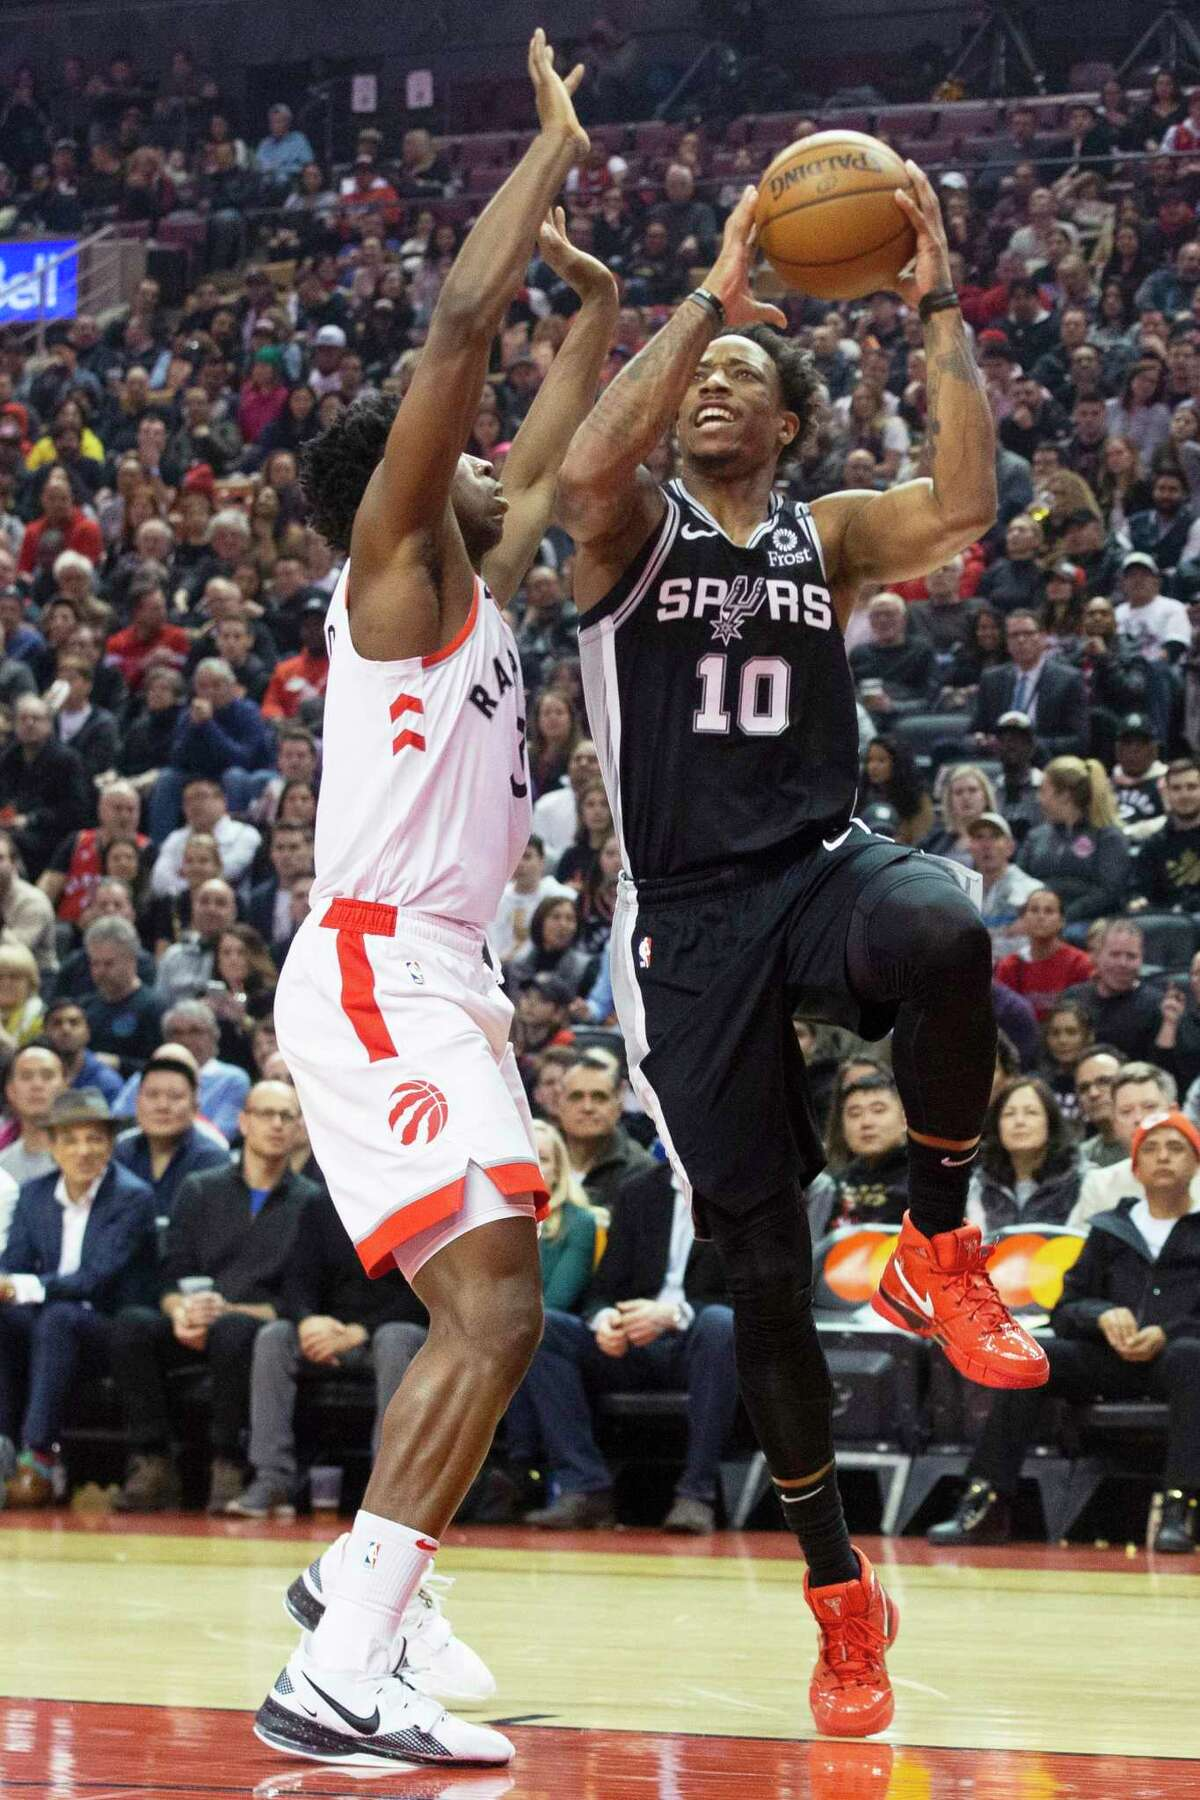 The Spurs' DeMar DeRozan, right, shoots on the Raptors' OG Anunoby in the first half on Sunday. DeRozan had his 11th straight game with at least 21 points.